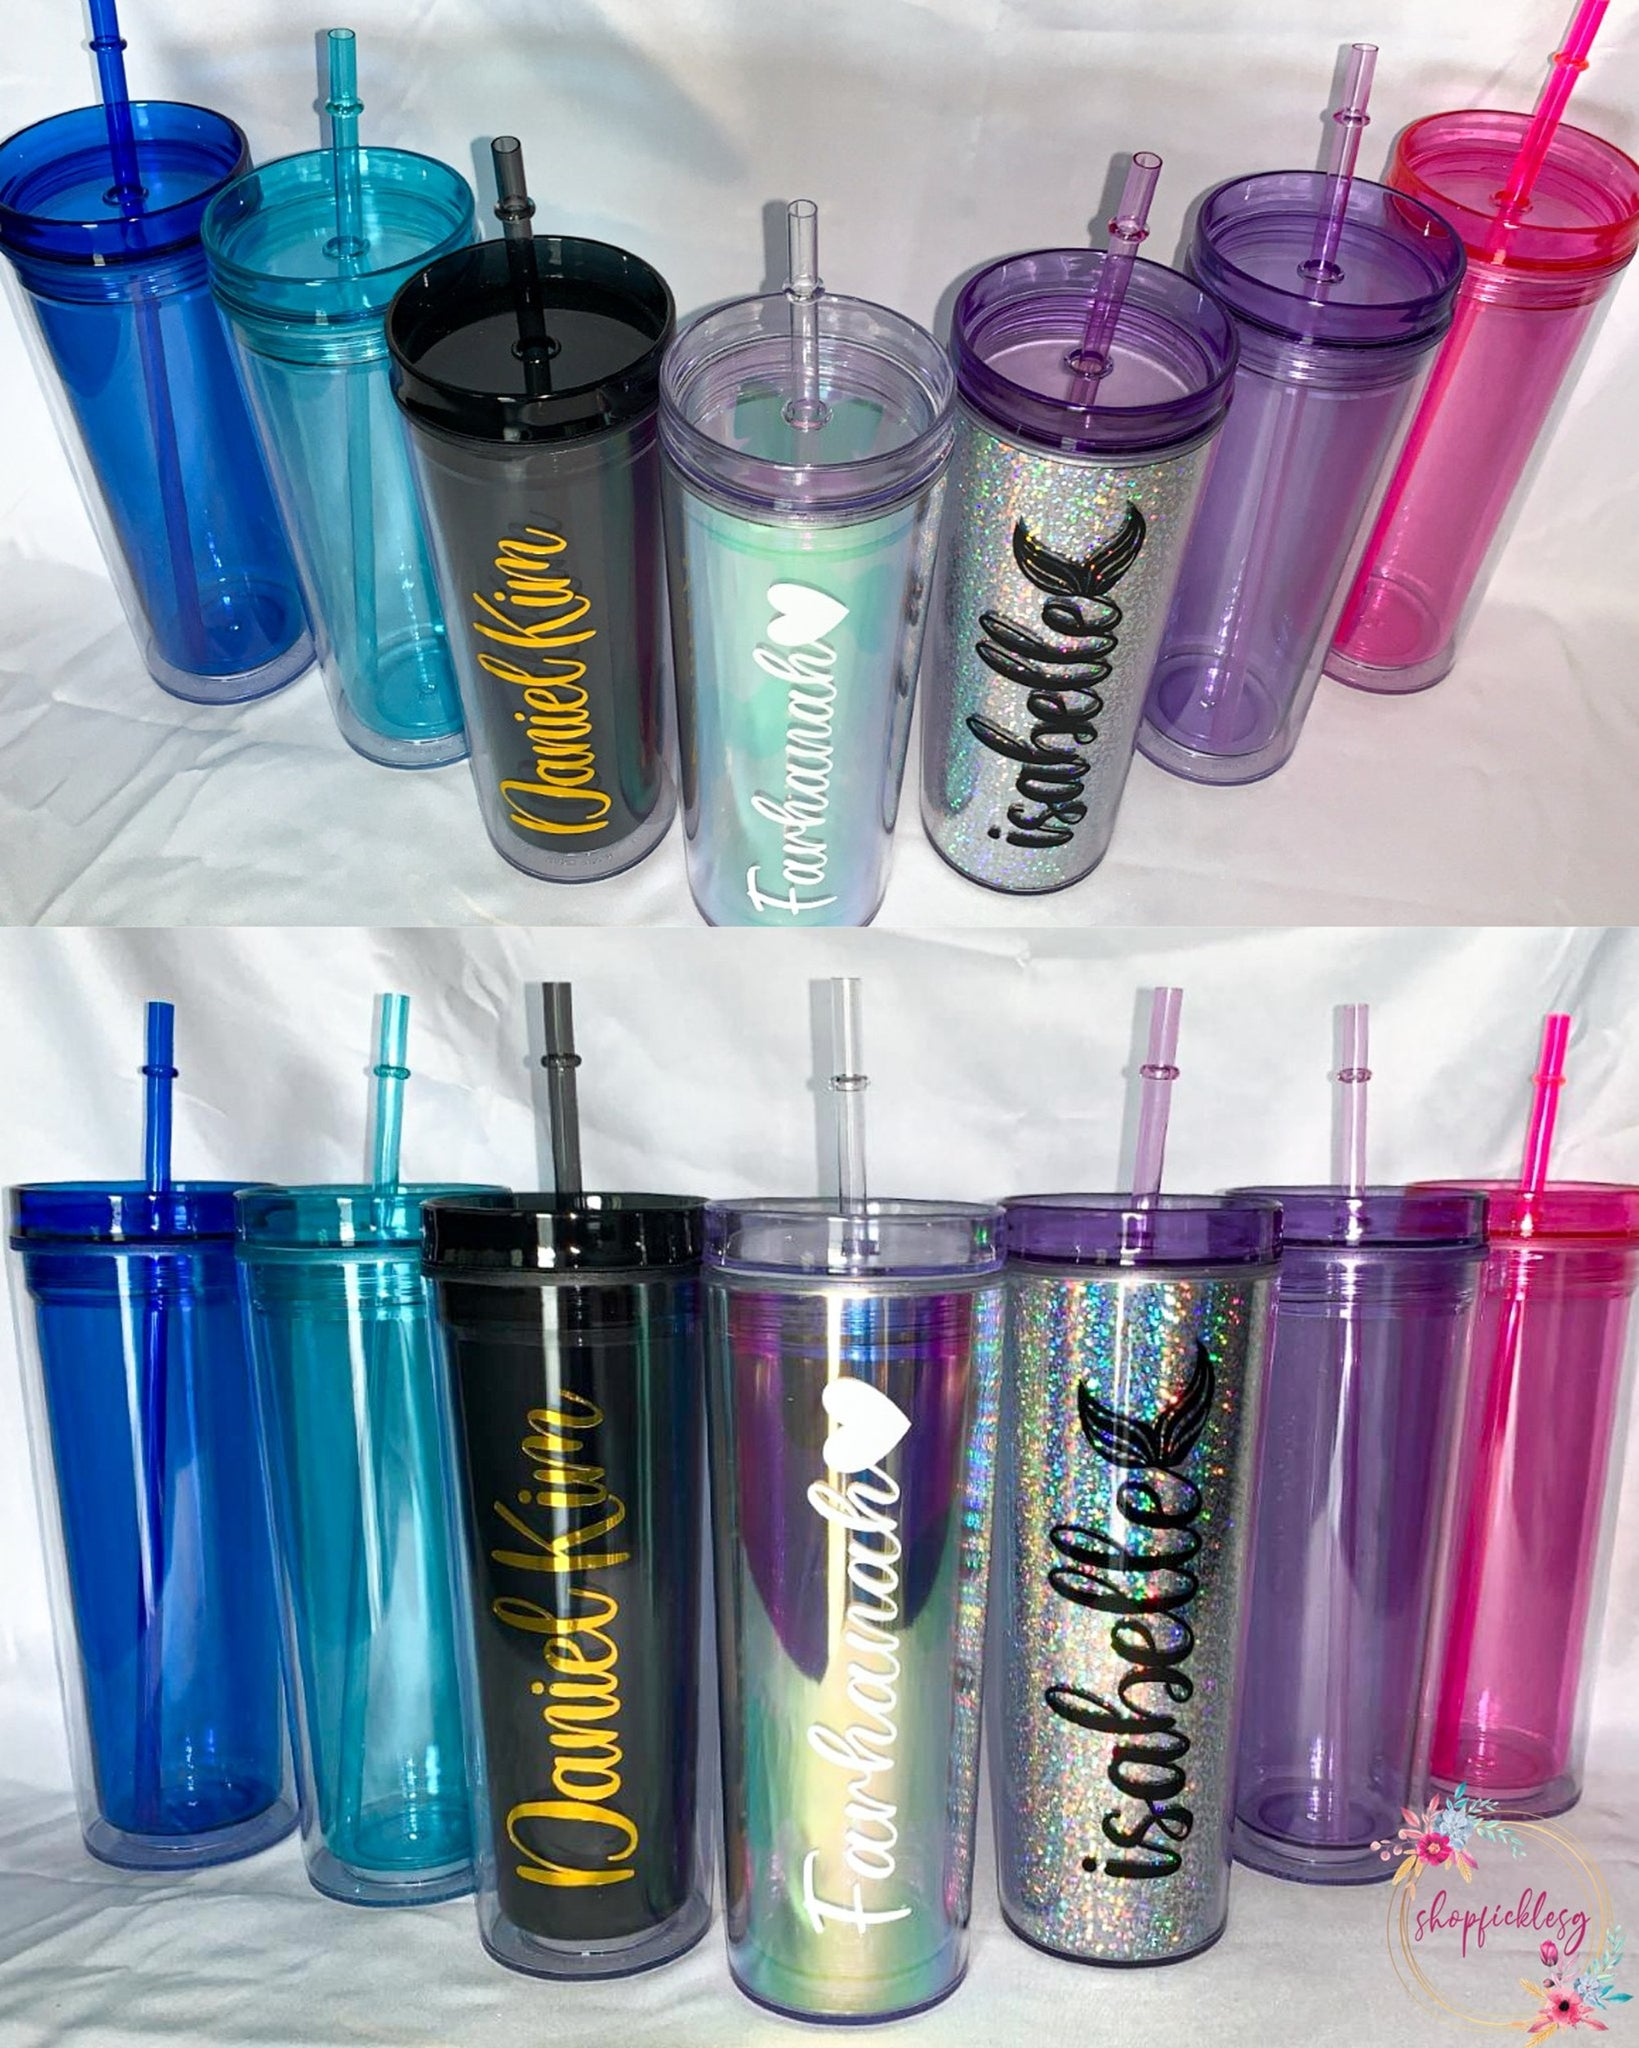 Customizable acrylic tumblers by Shopficklesg which comes in various colours and fonts